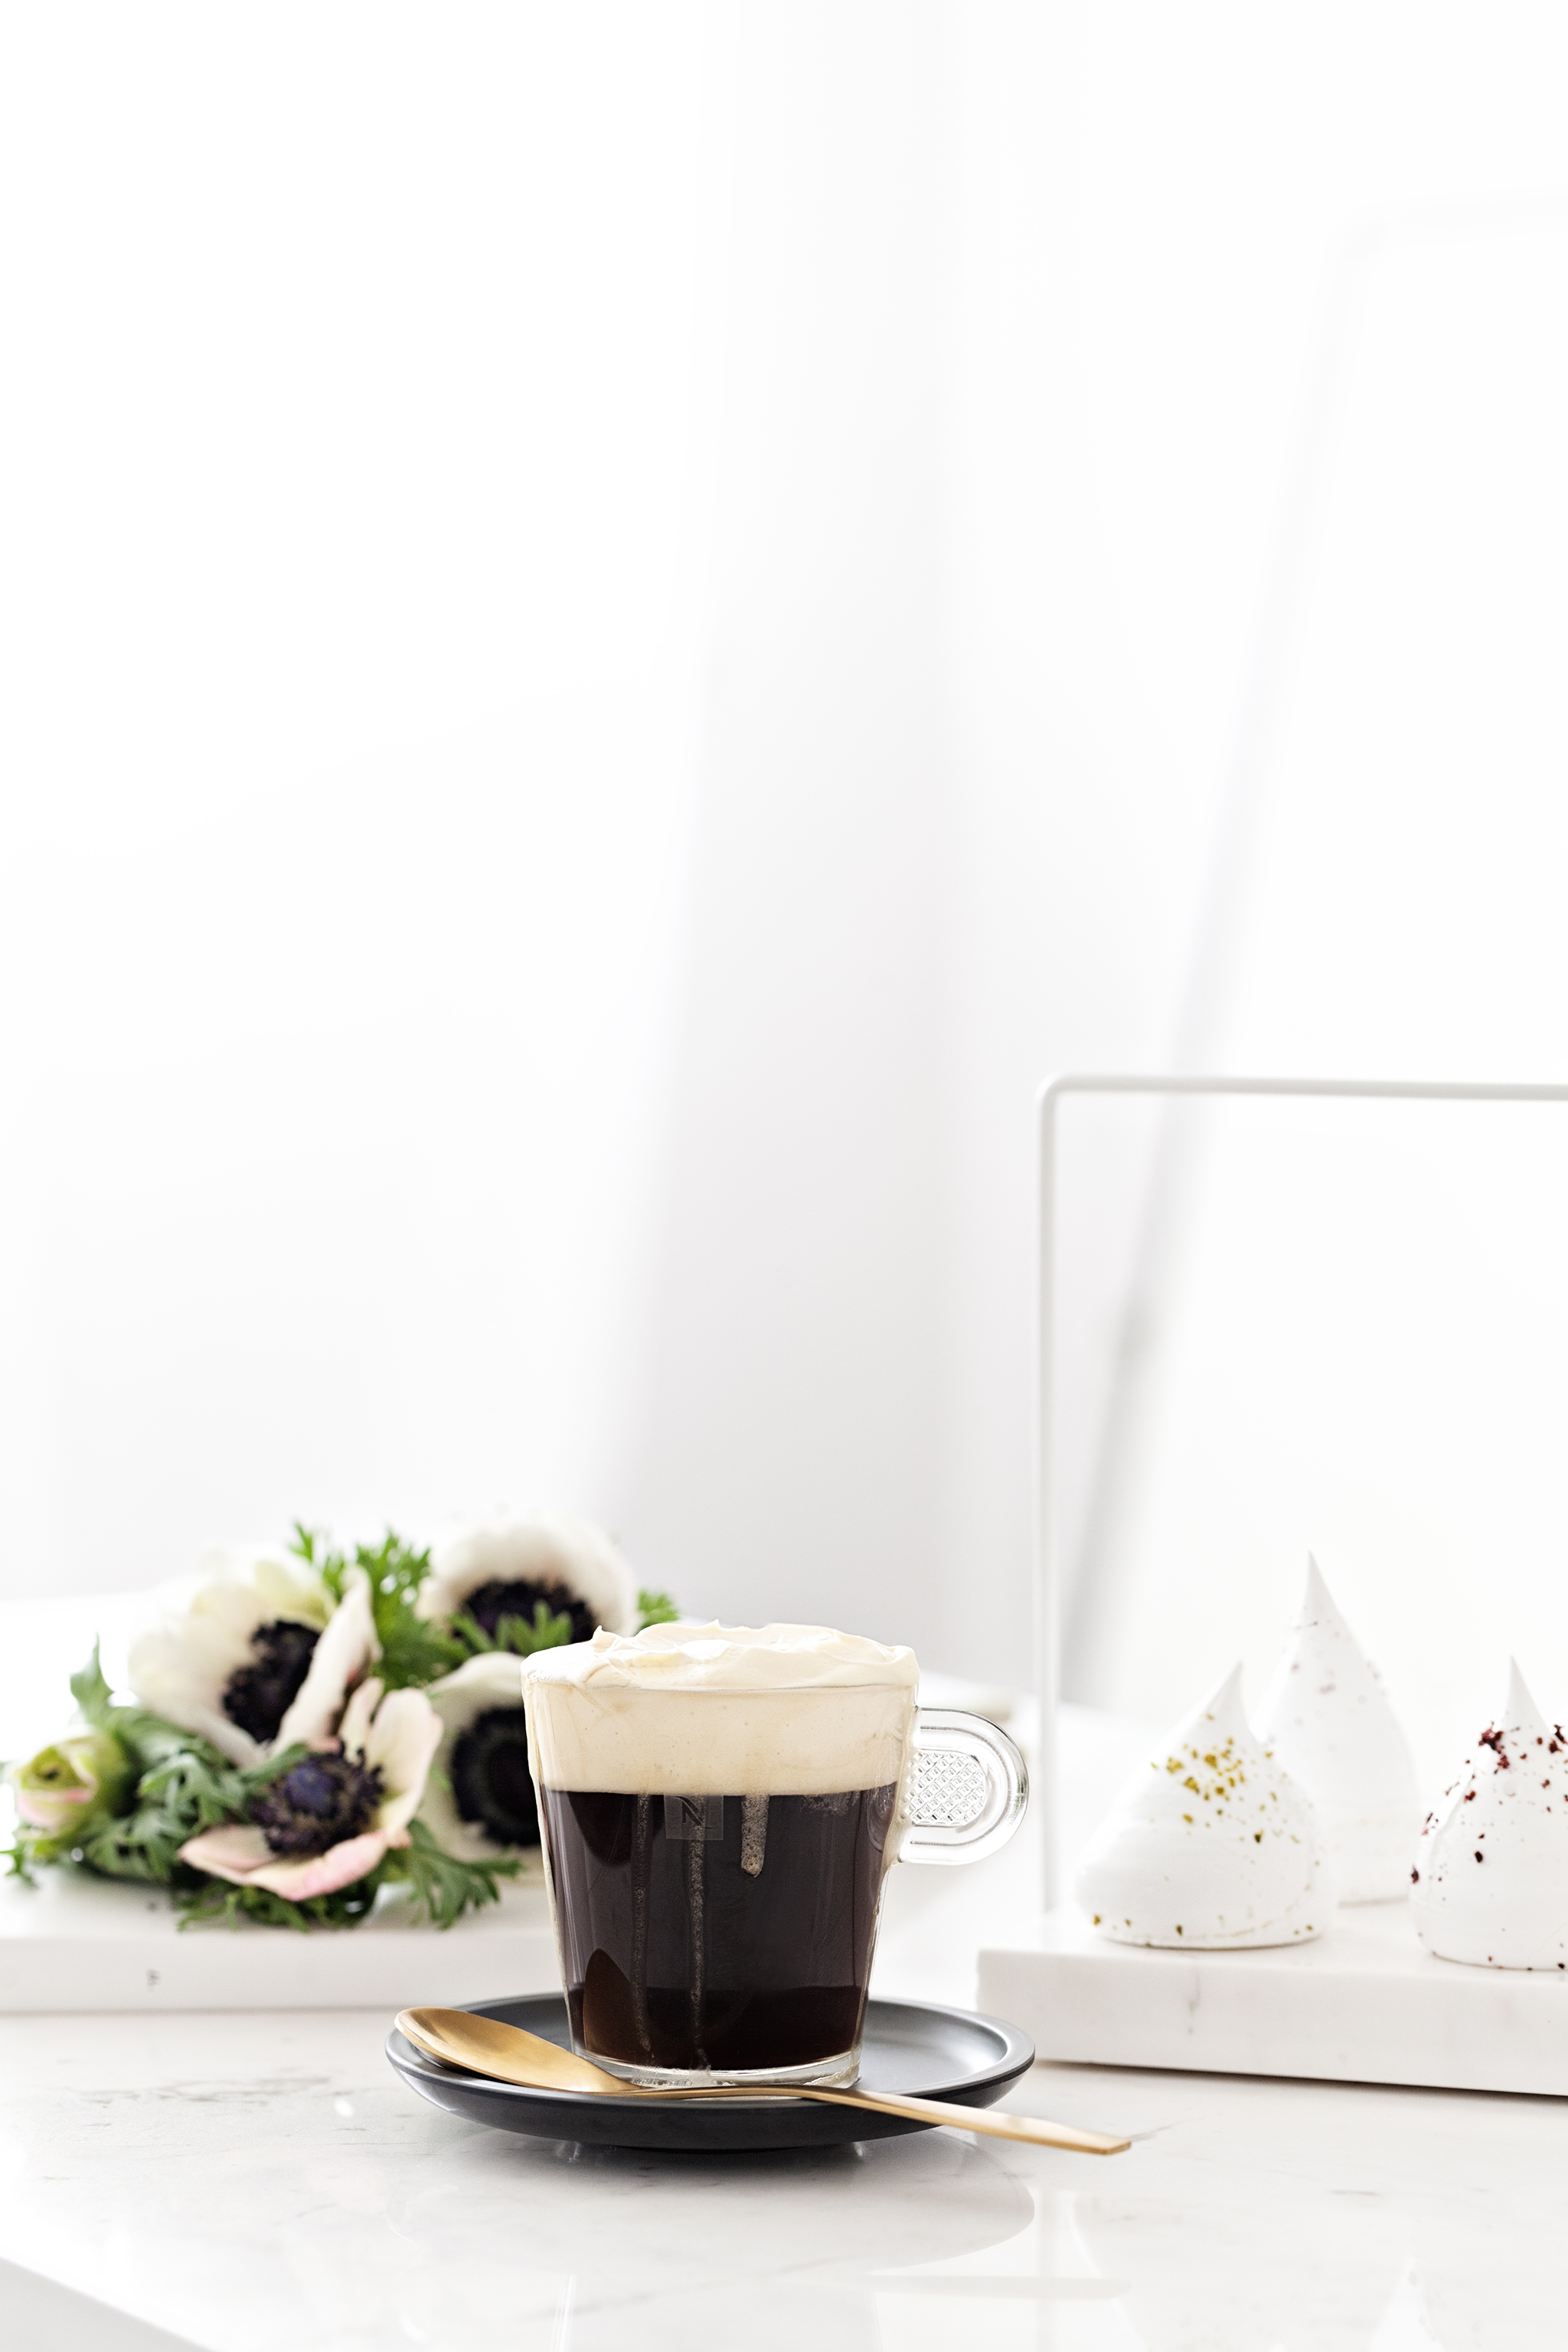 Nespresso Irish Coffee